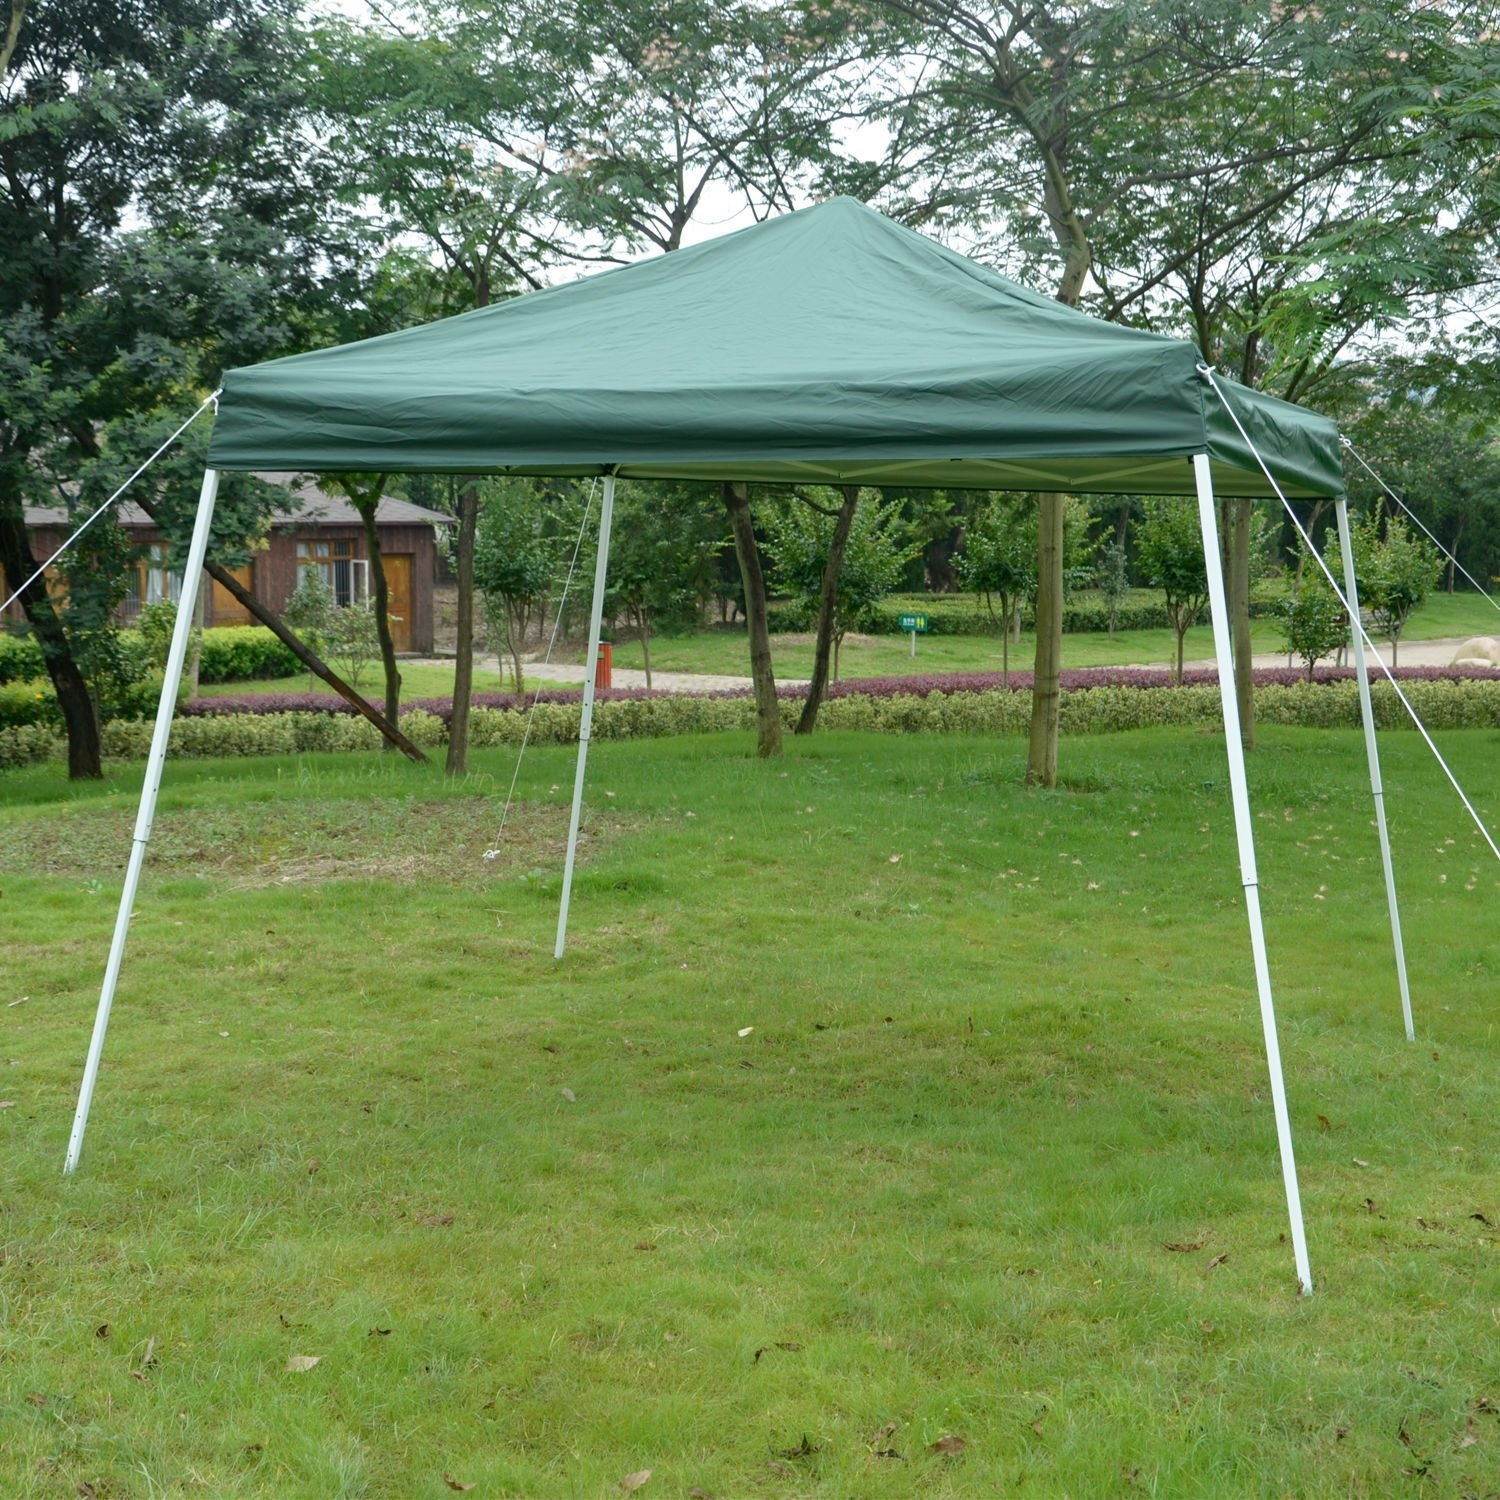 New MTN-G MTN-G EZ Pop Up Canopy Wedding Party Tent Outdo...